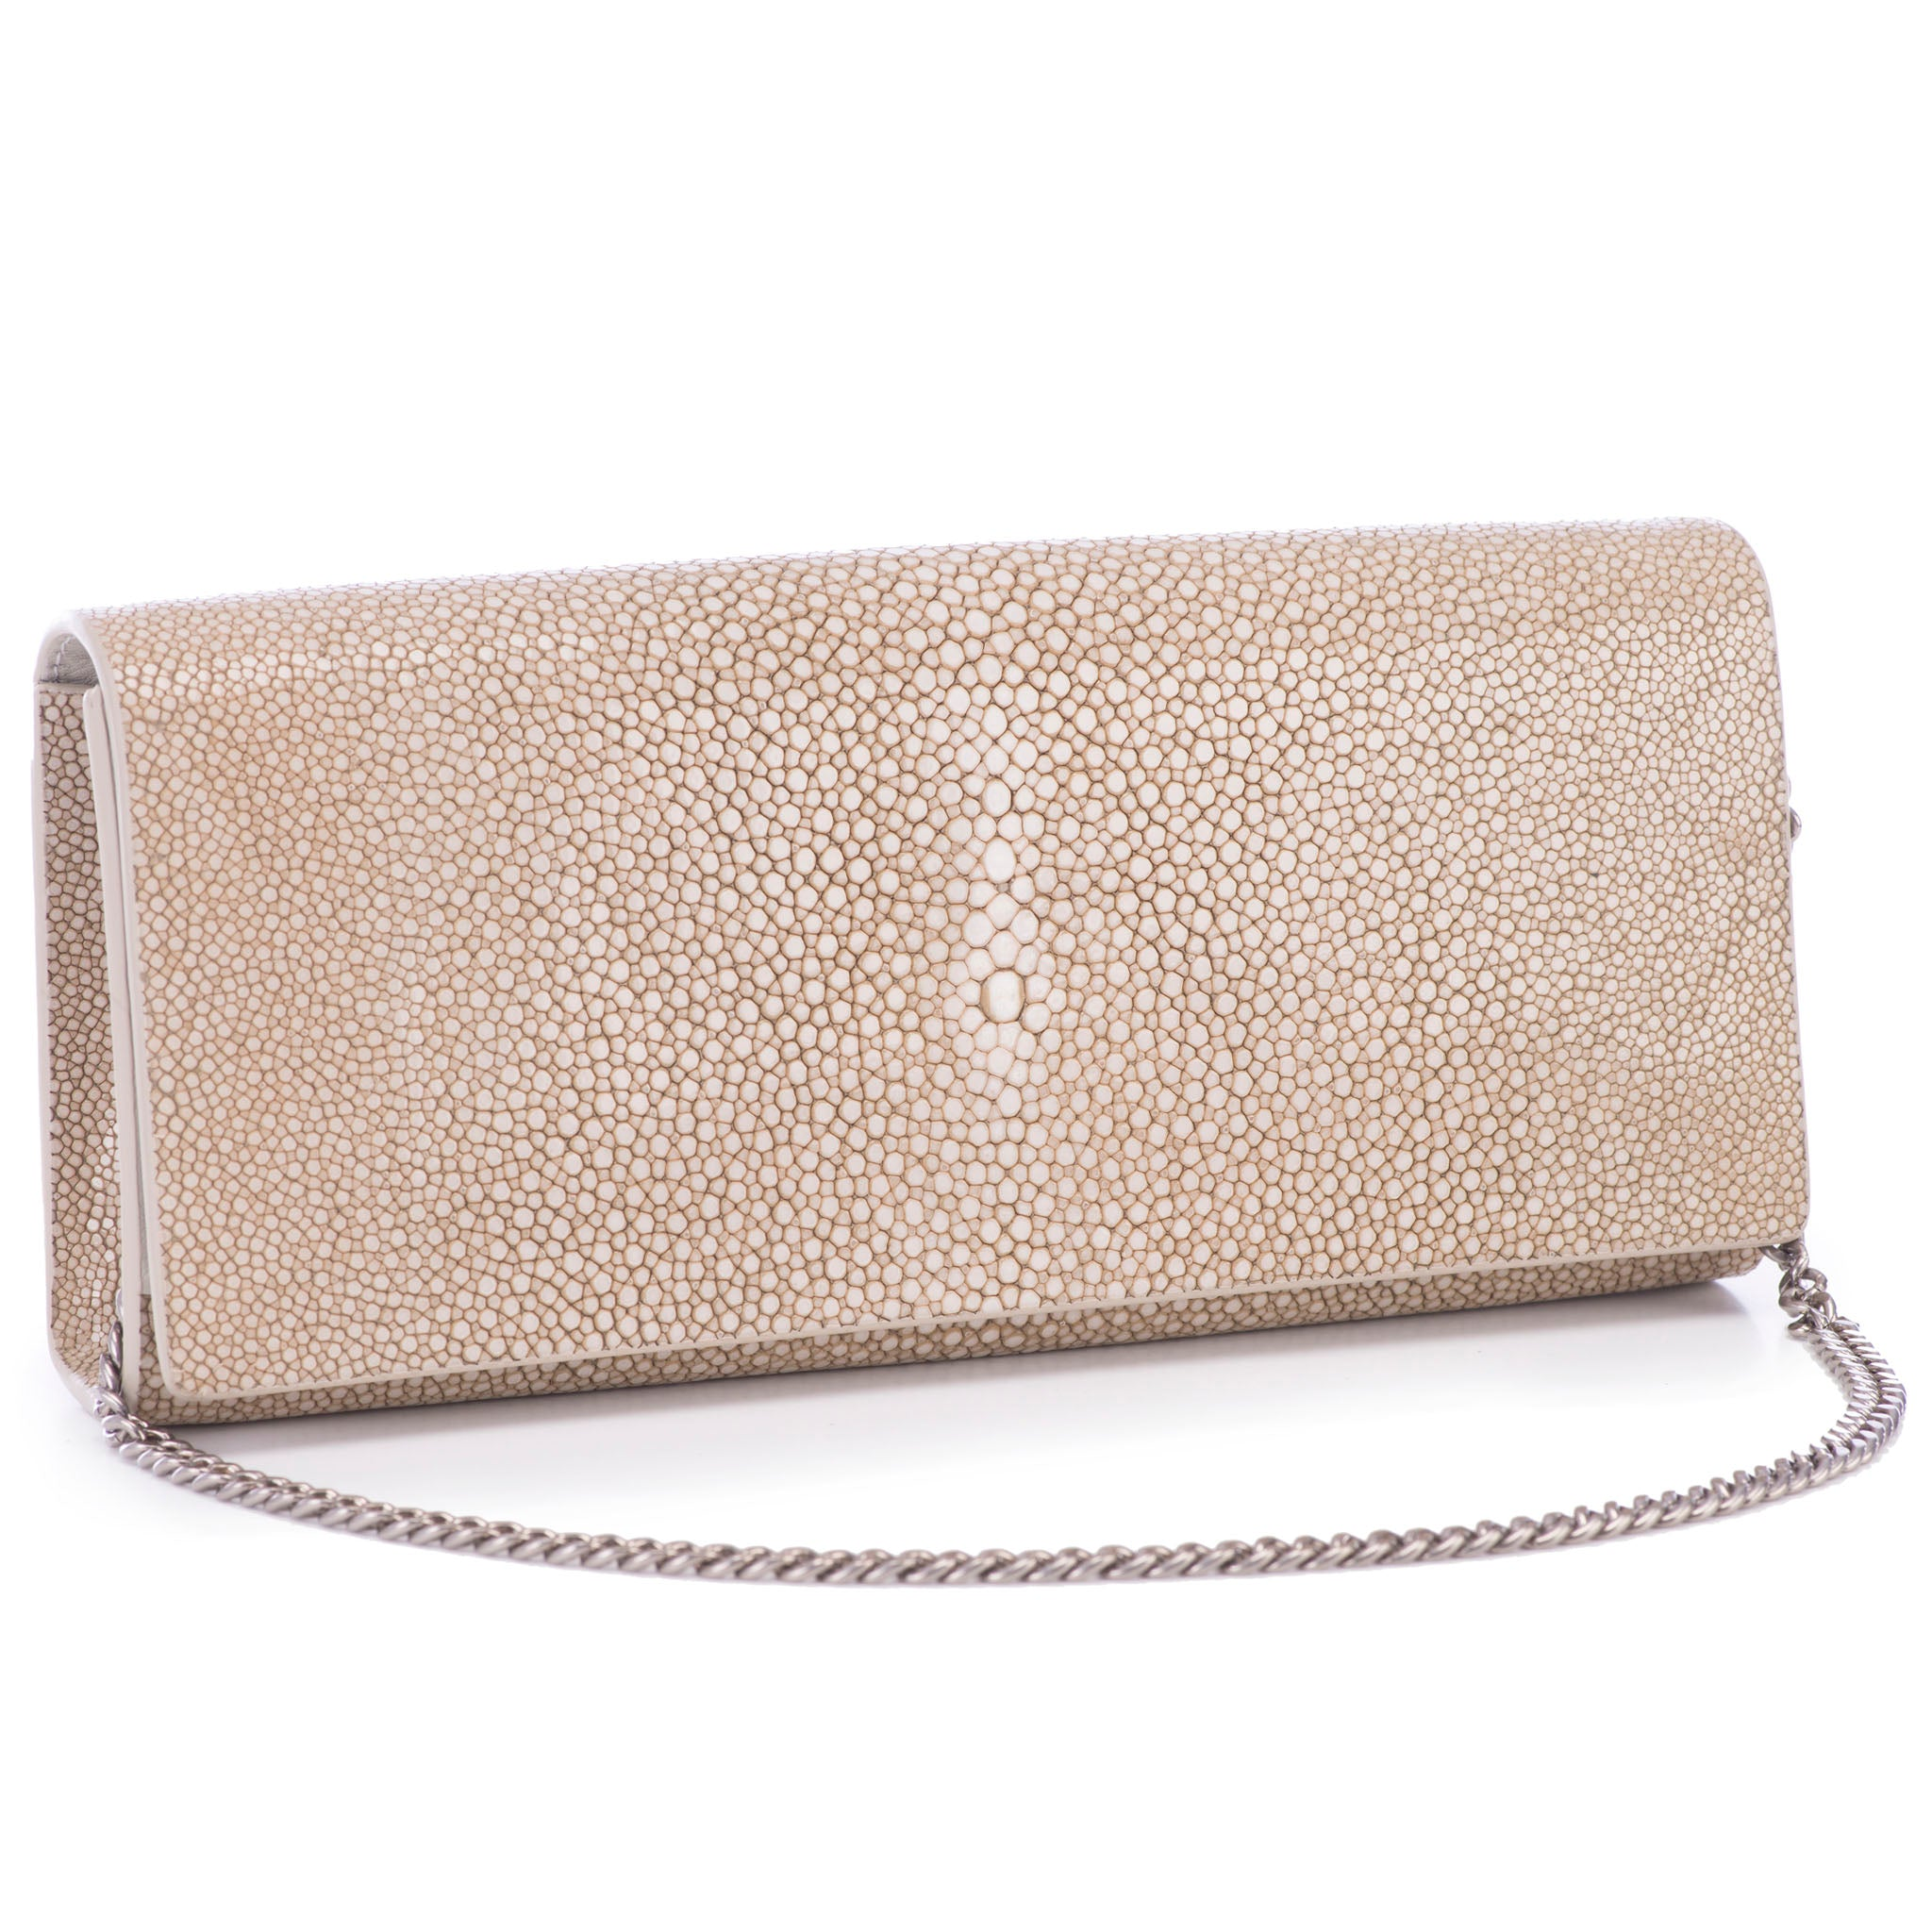 Taupe  Shagreen Clutch Bag Front View With Chain Cleo - Vivo Direct